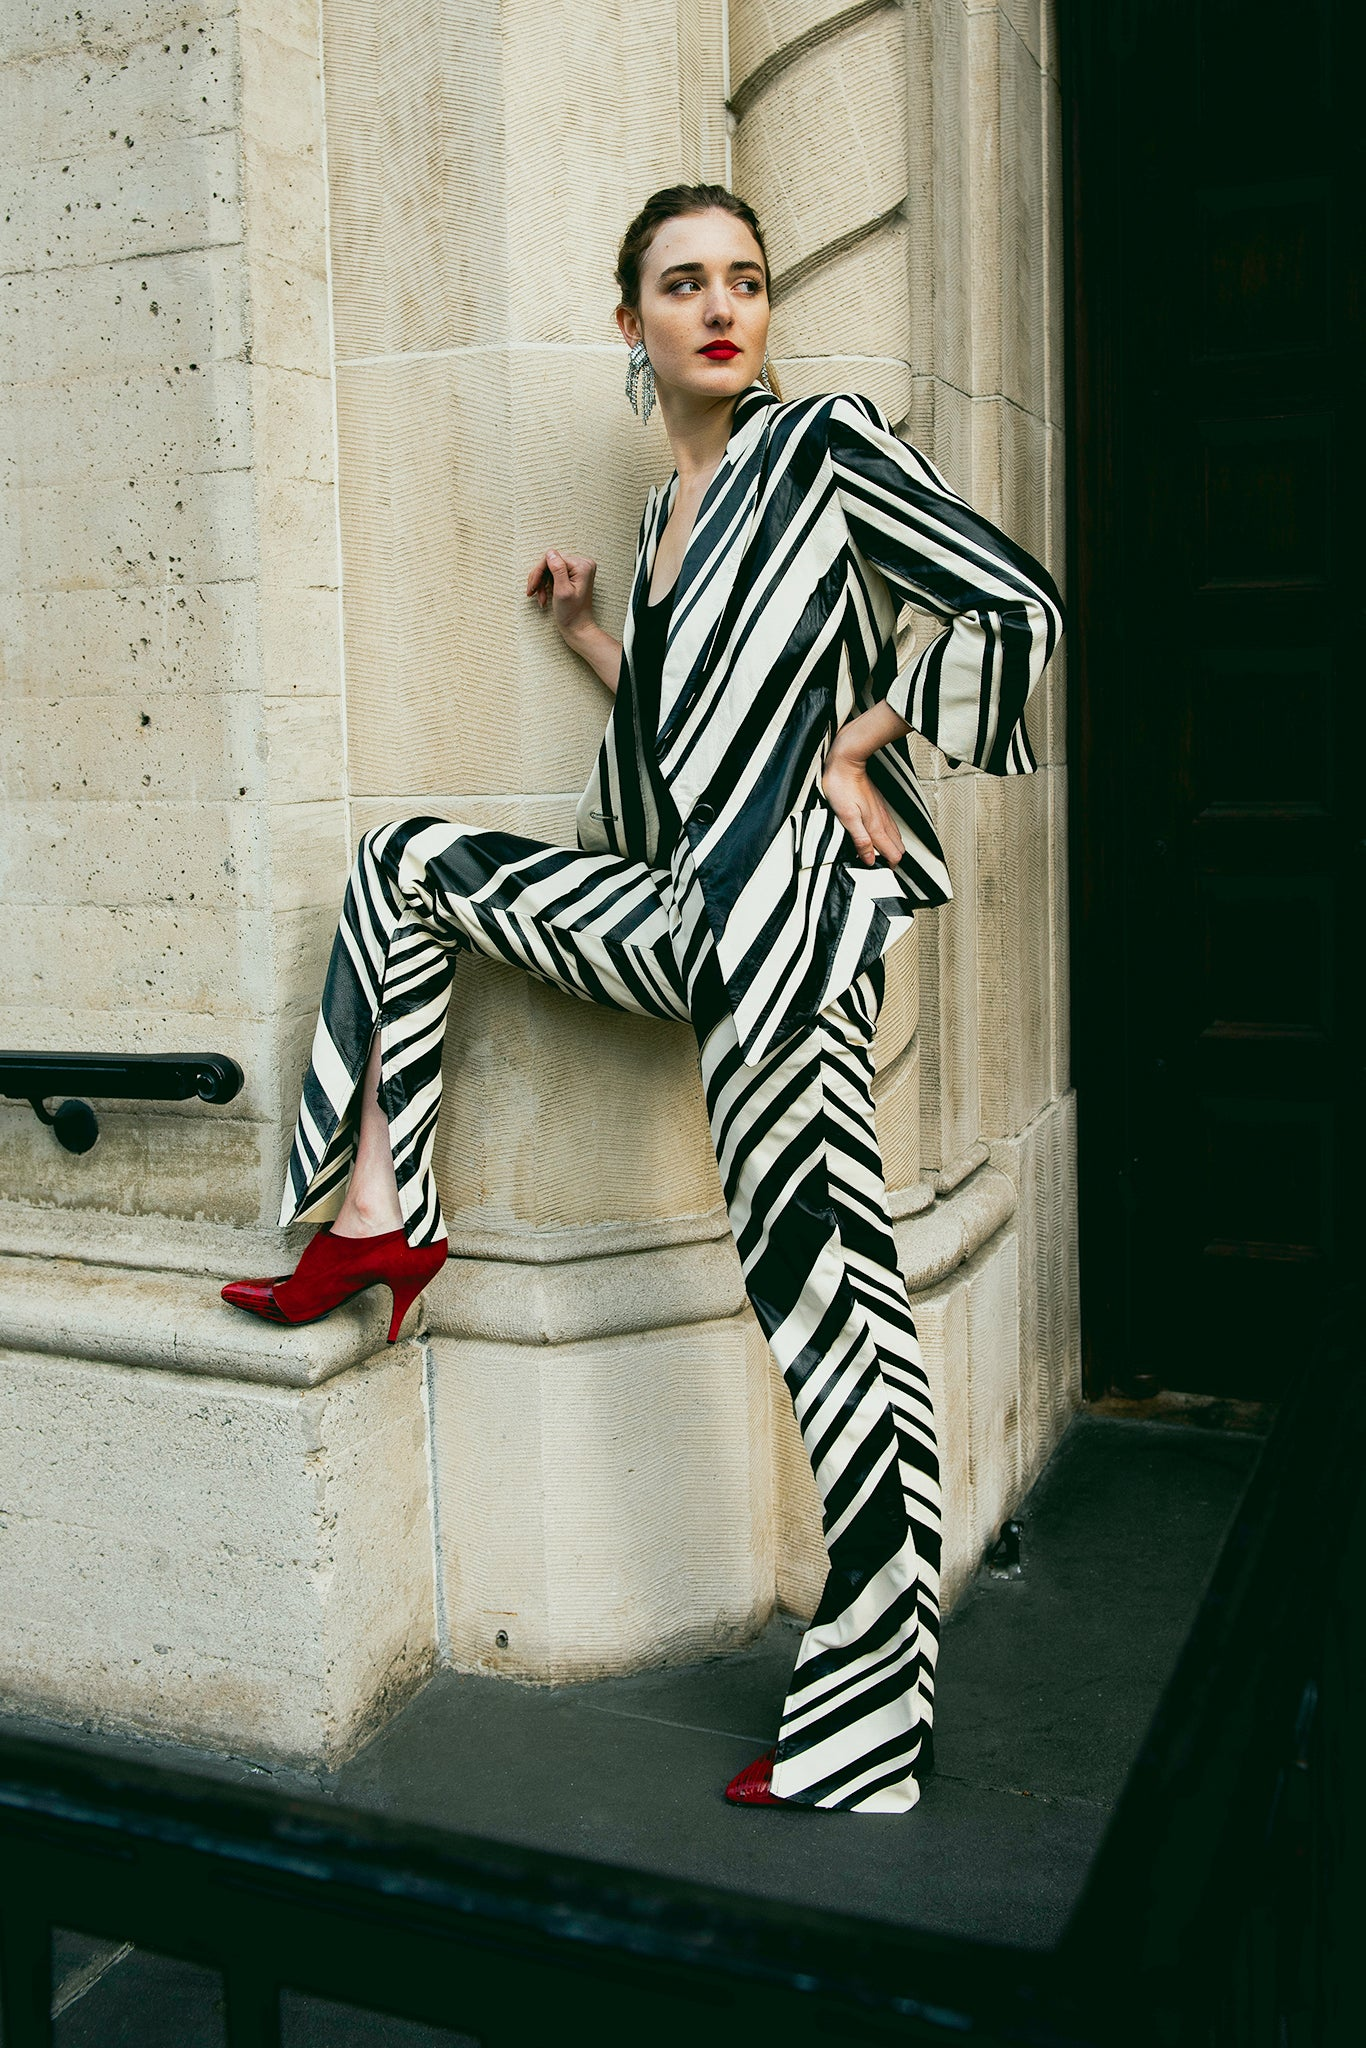 Recess Vintage Girl in Gianfranco Ferre Zebra Stripe Leather Suit with red shoes